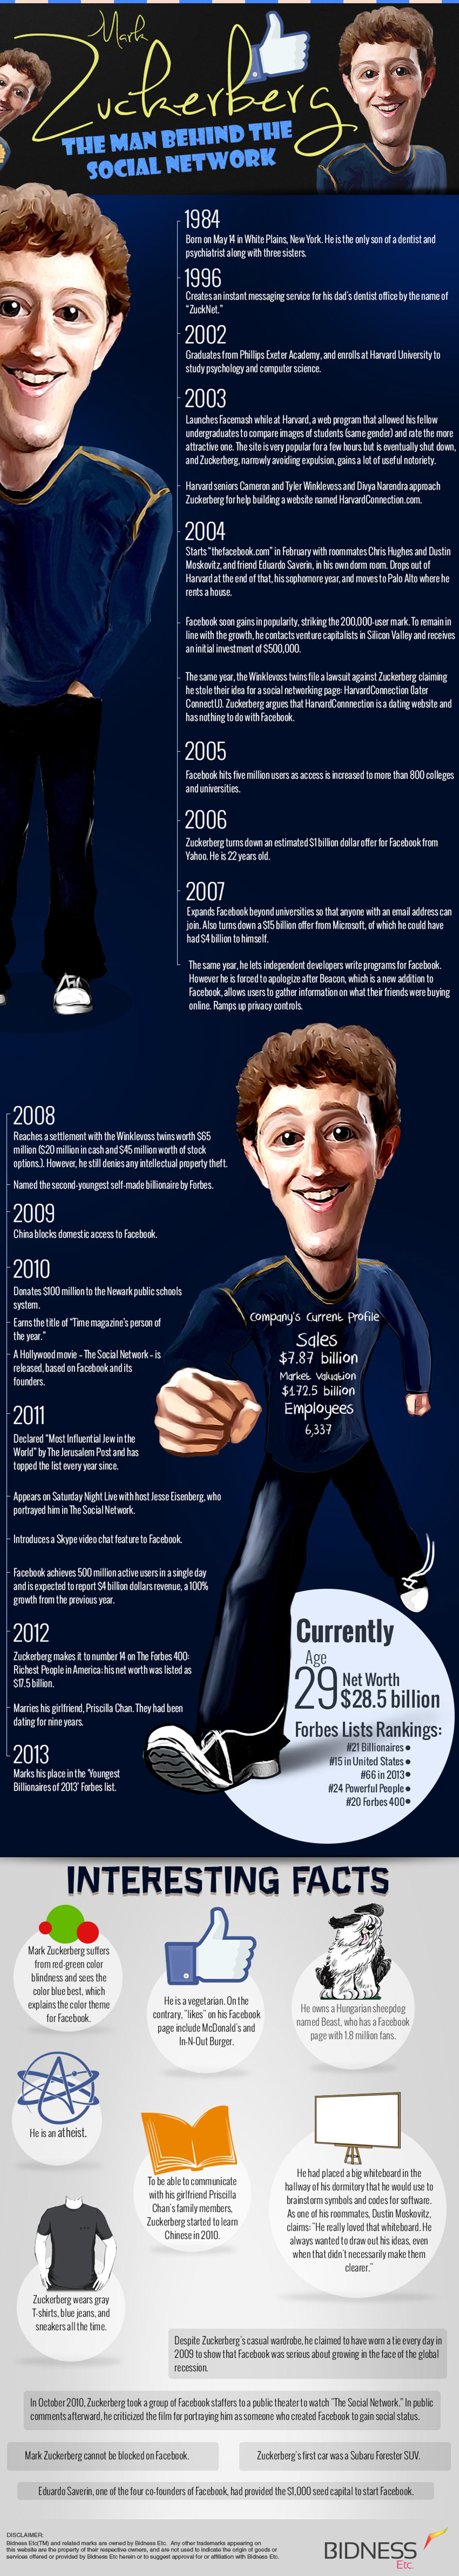 Life History of Mark Zuckerberg Infographic